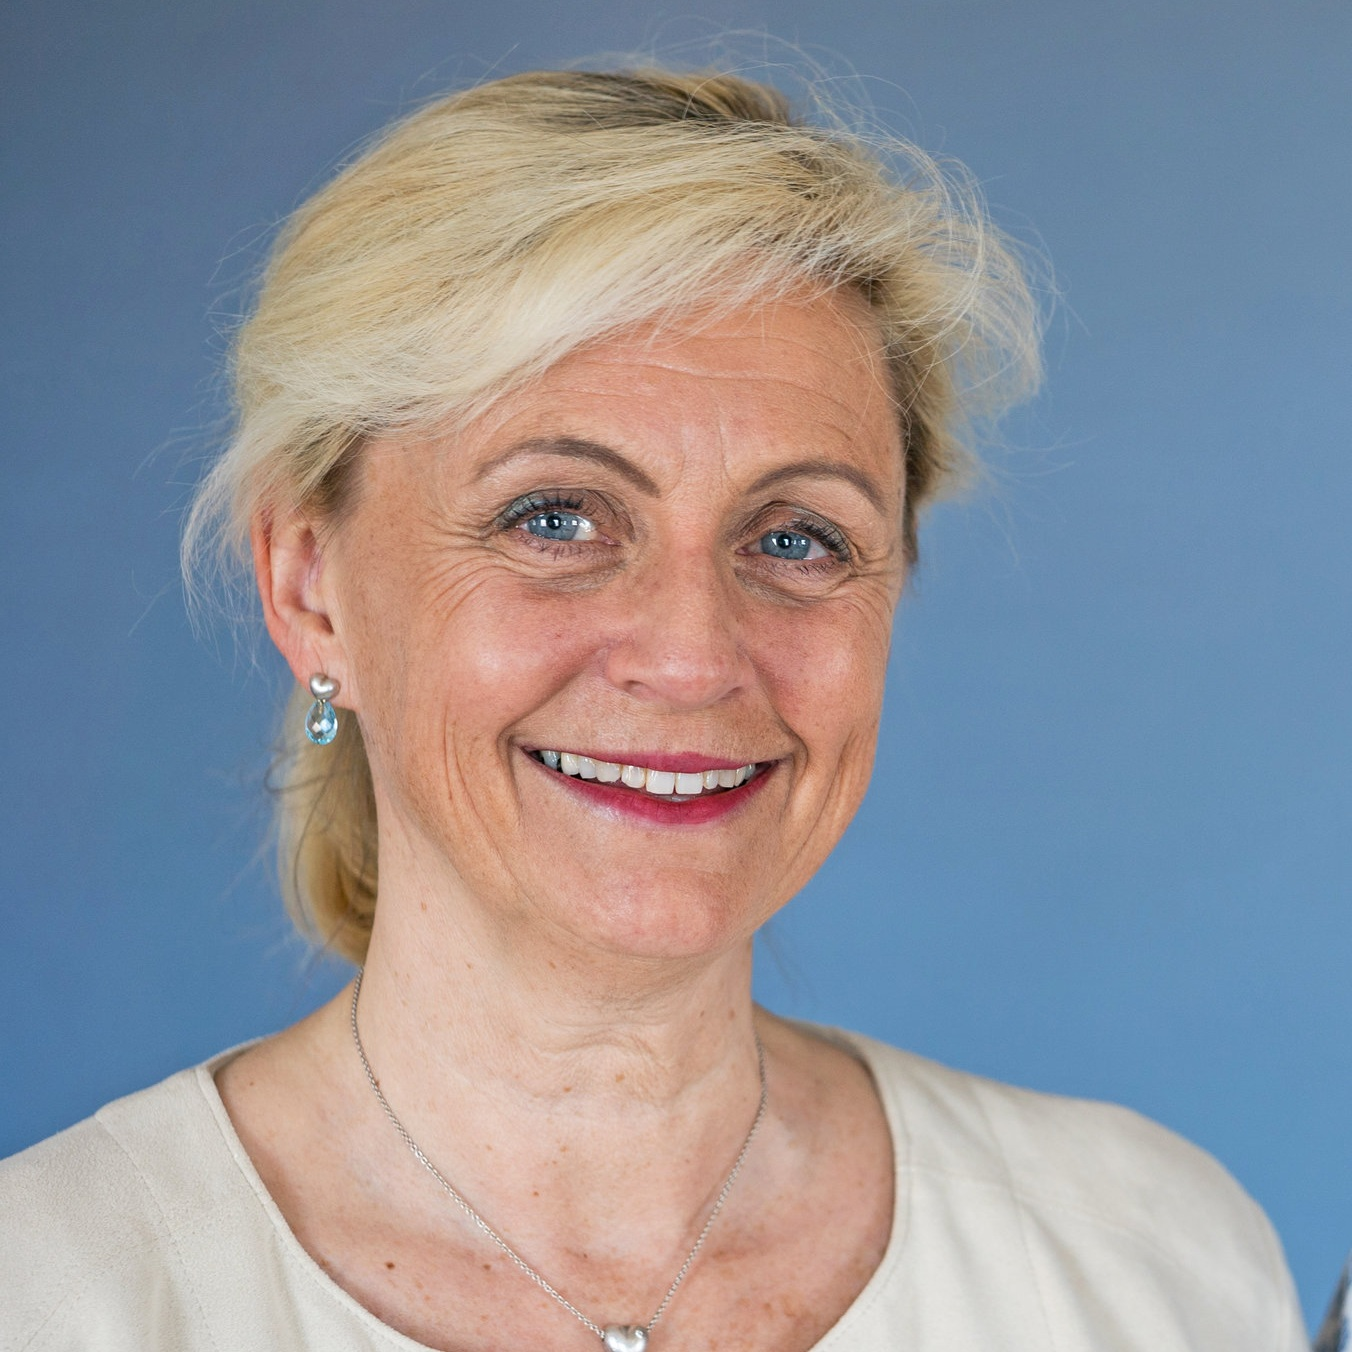 Turid Elisabeth Solvang   The founder and CEO of FutureBoards    Read more